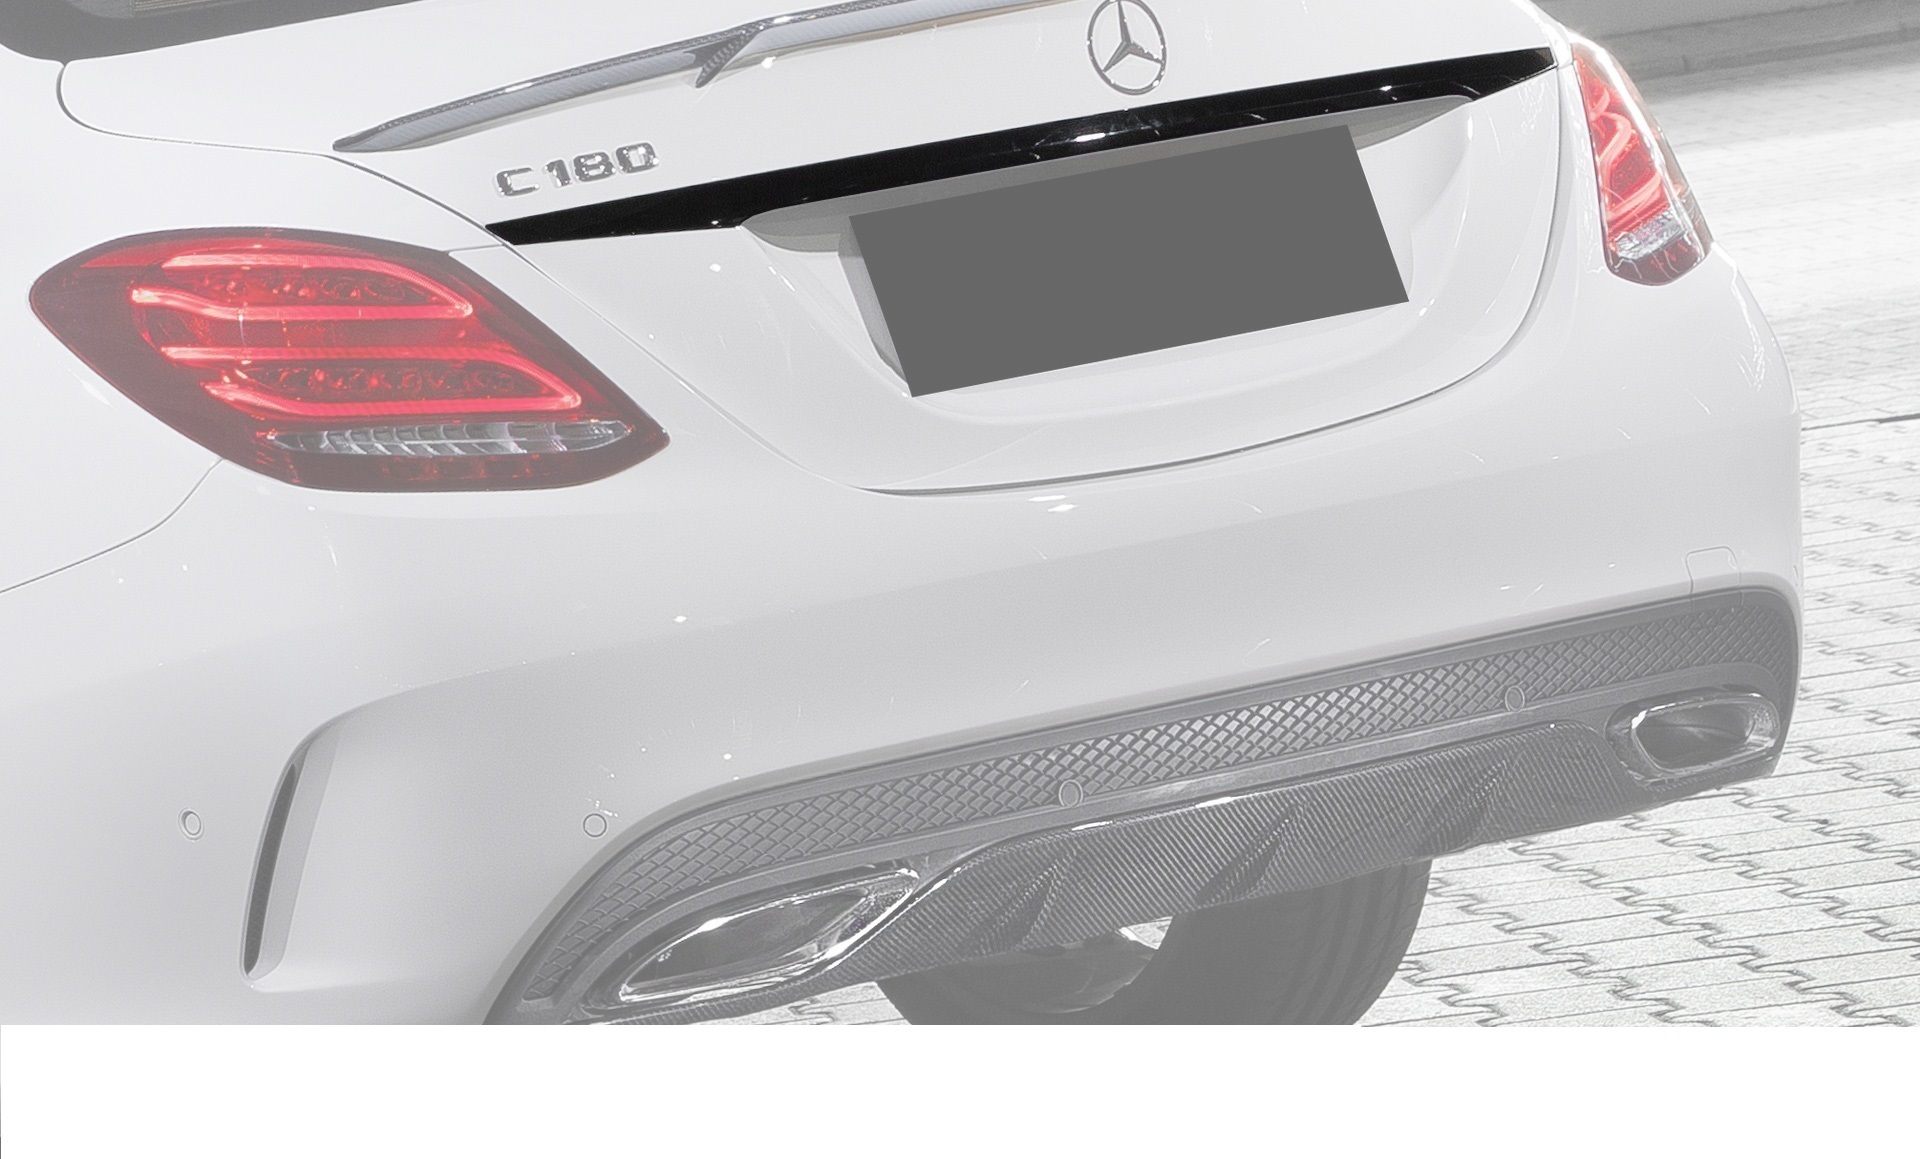 Hodoor Performance Carbon fiber trim on the trunk above number AMG Style for Mercedes C-class W205